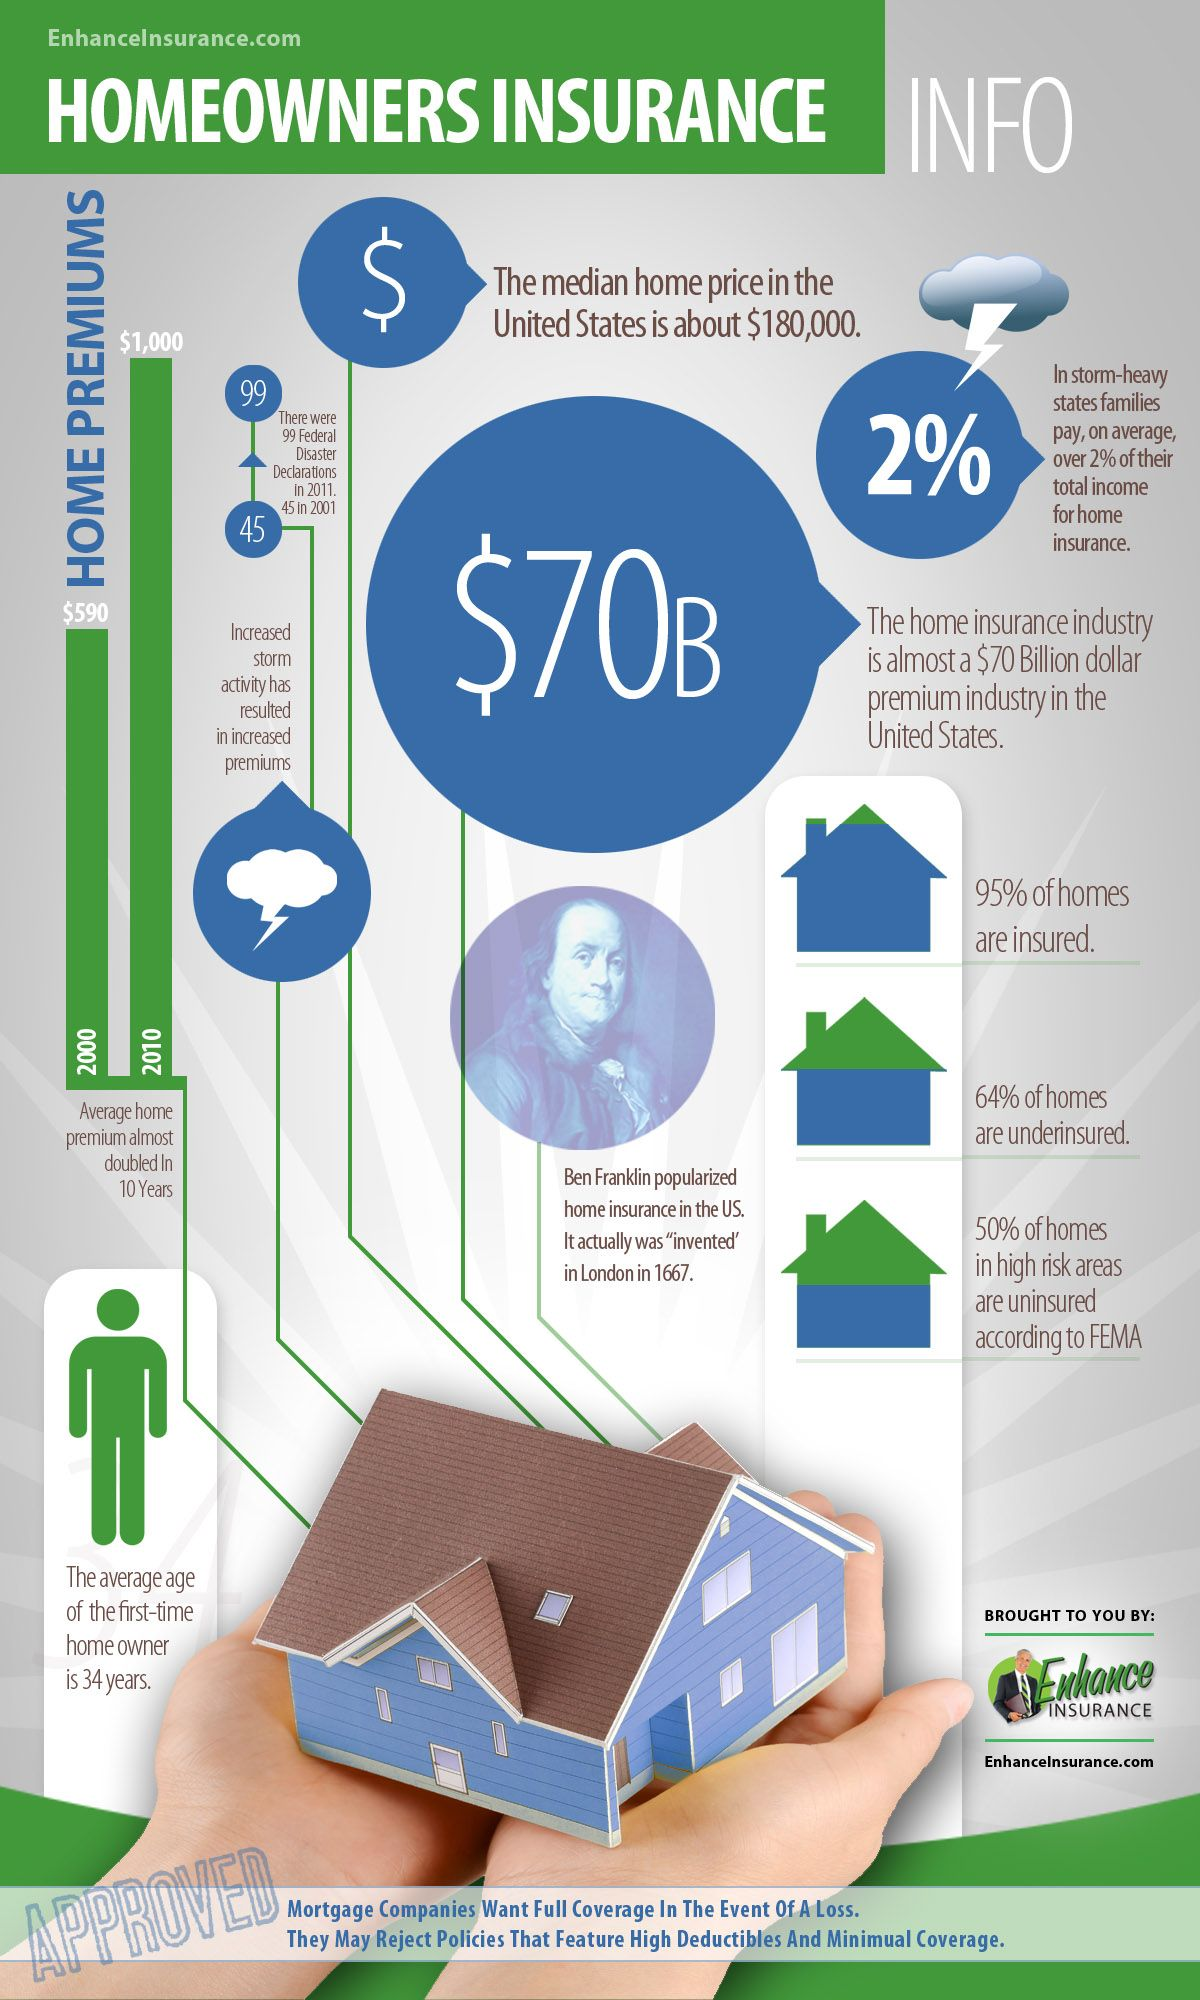 Homeowners insurance facts and statistics infographic